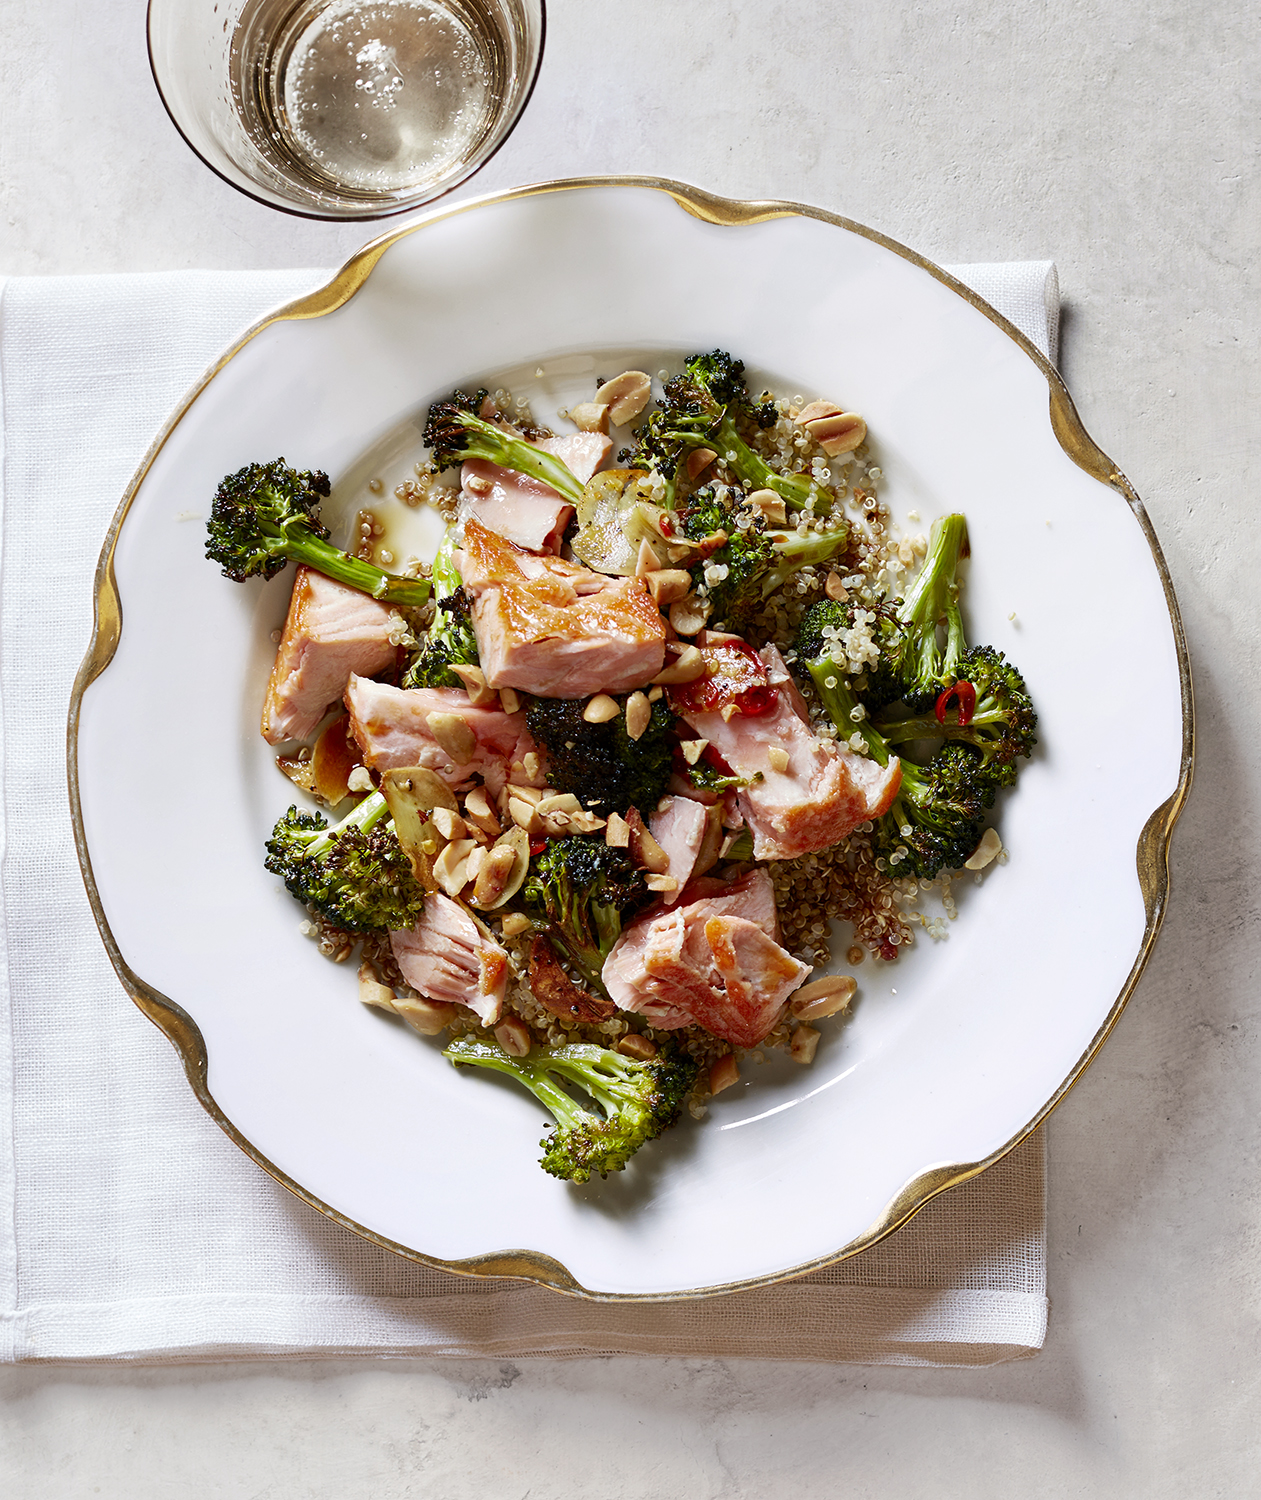 Roasted Salmon with Crispy Broccoli and Quinoa